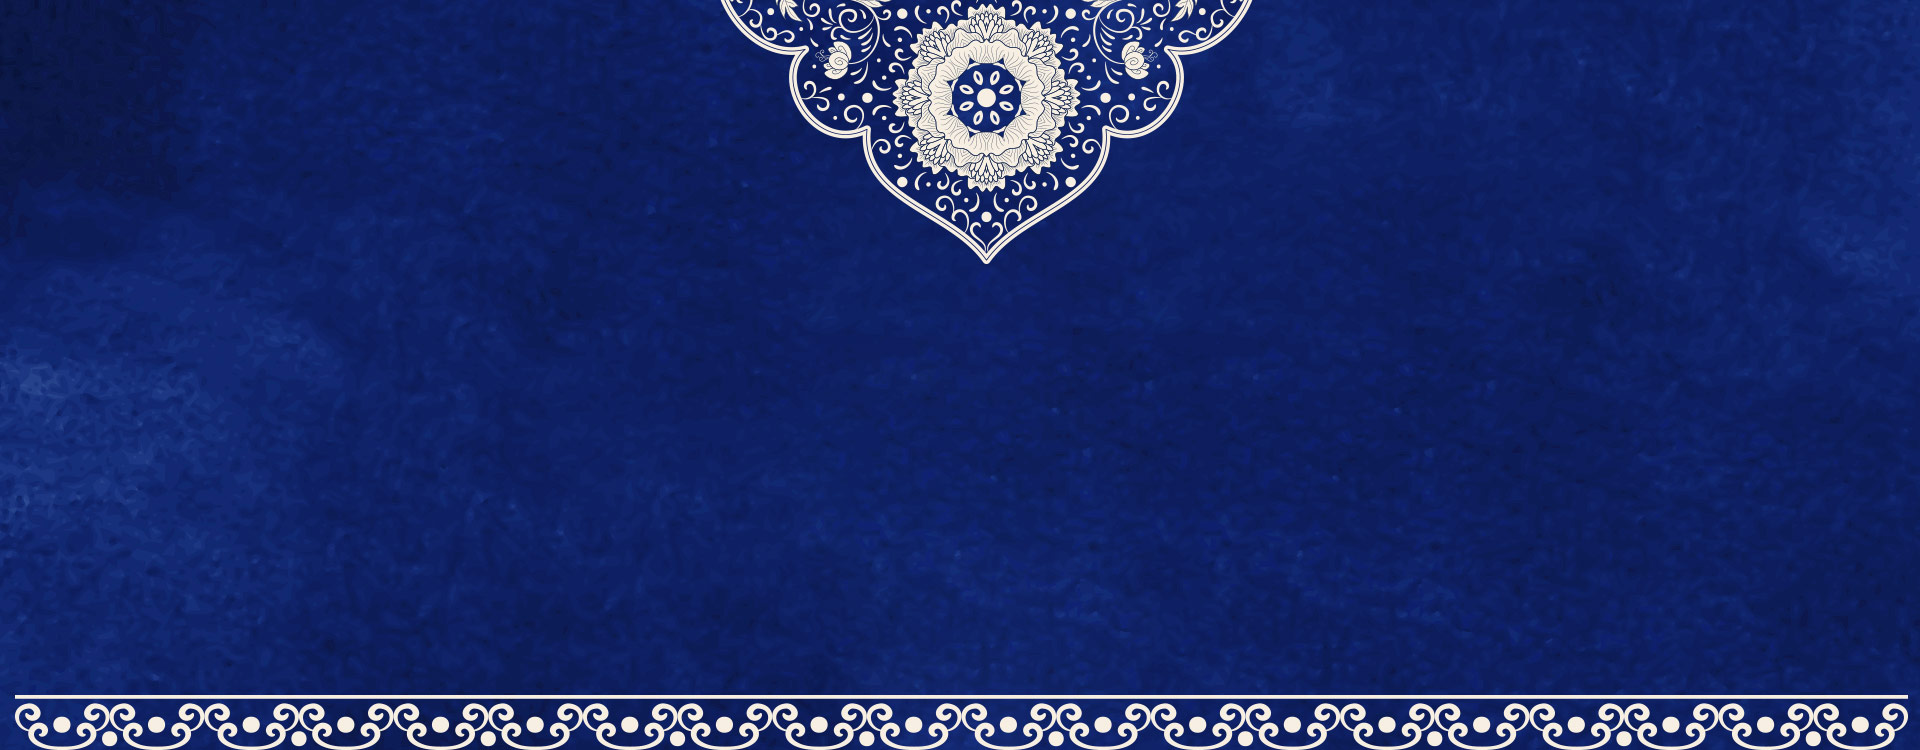 vintage blue lace background  lace  royal blue  textured background image for free download